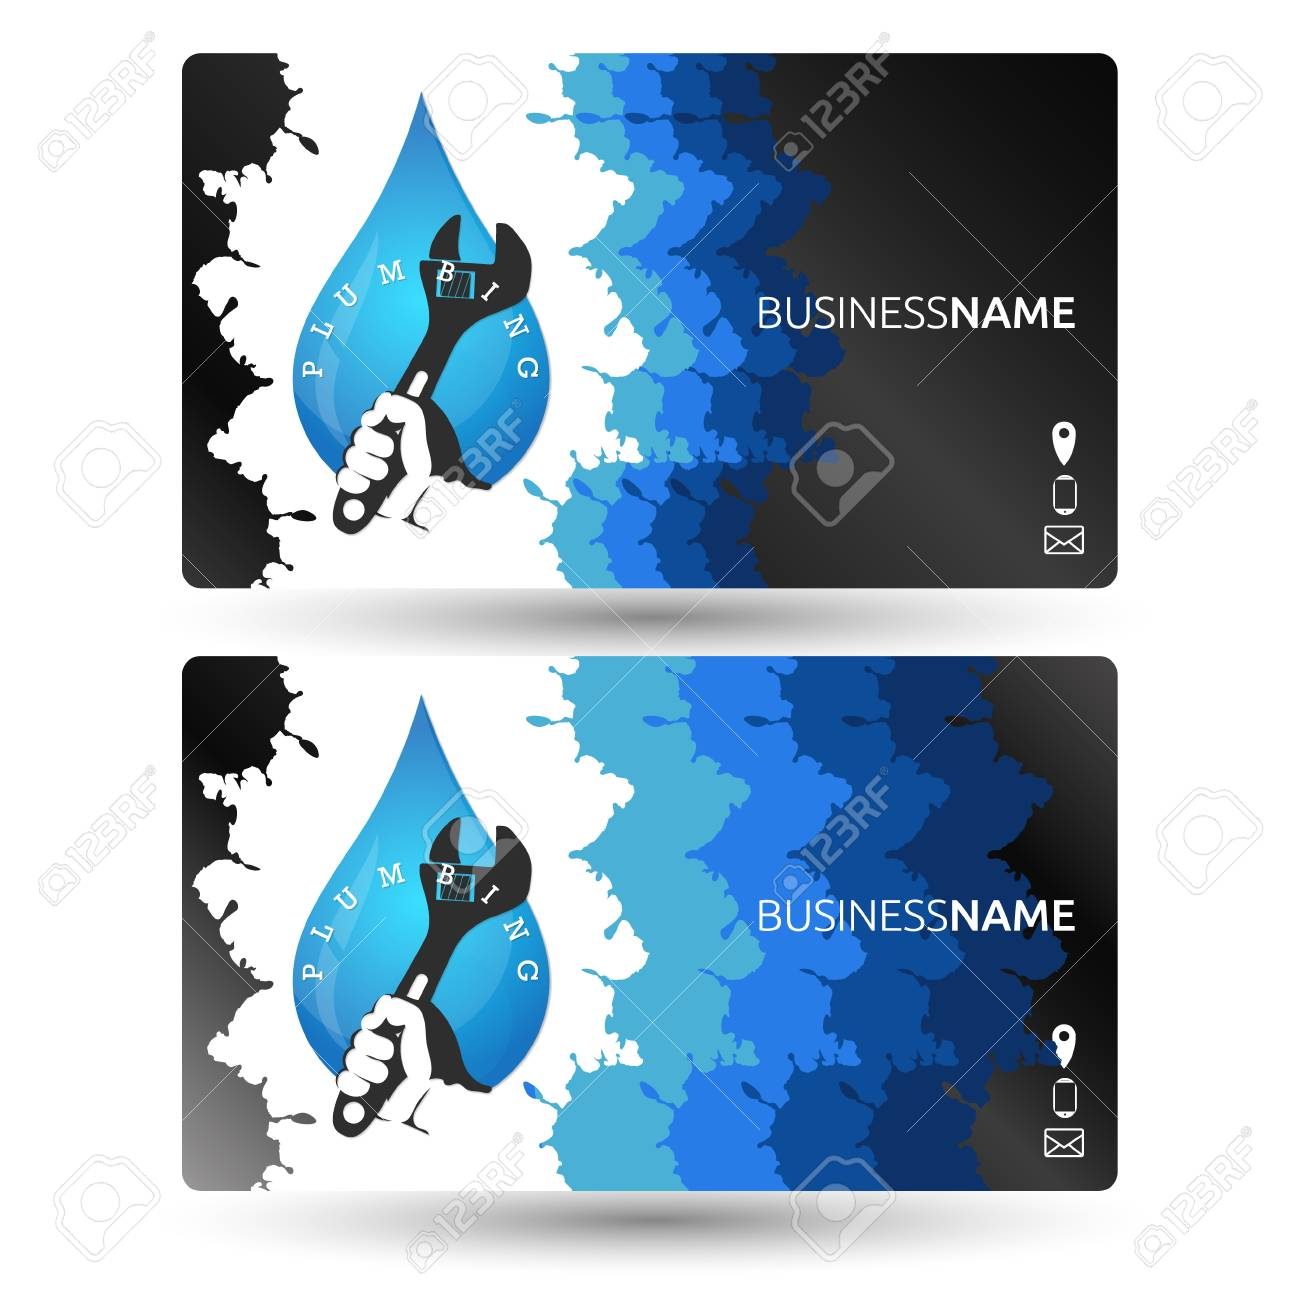 Plumbing Business Card Design Template Royalty Free Cliparts Vectors And Stock Illustration Image 74124087